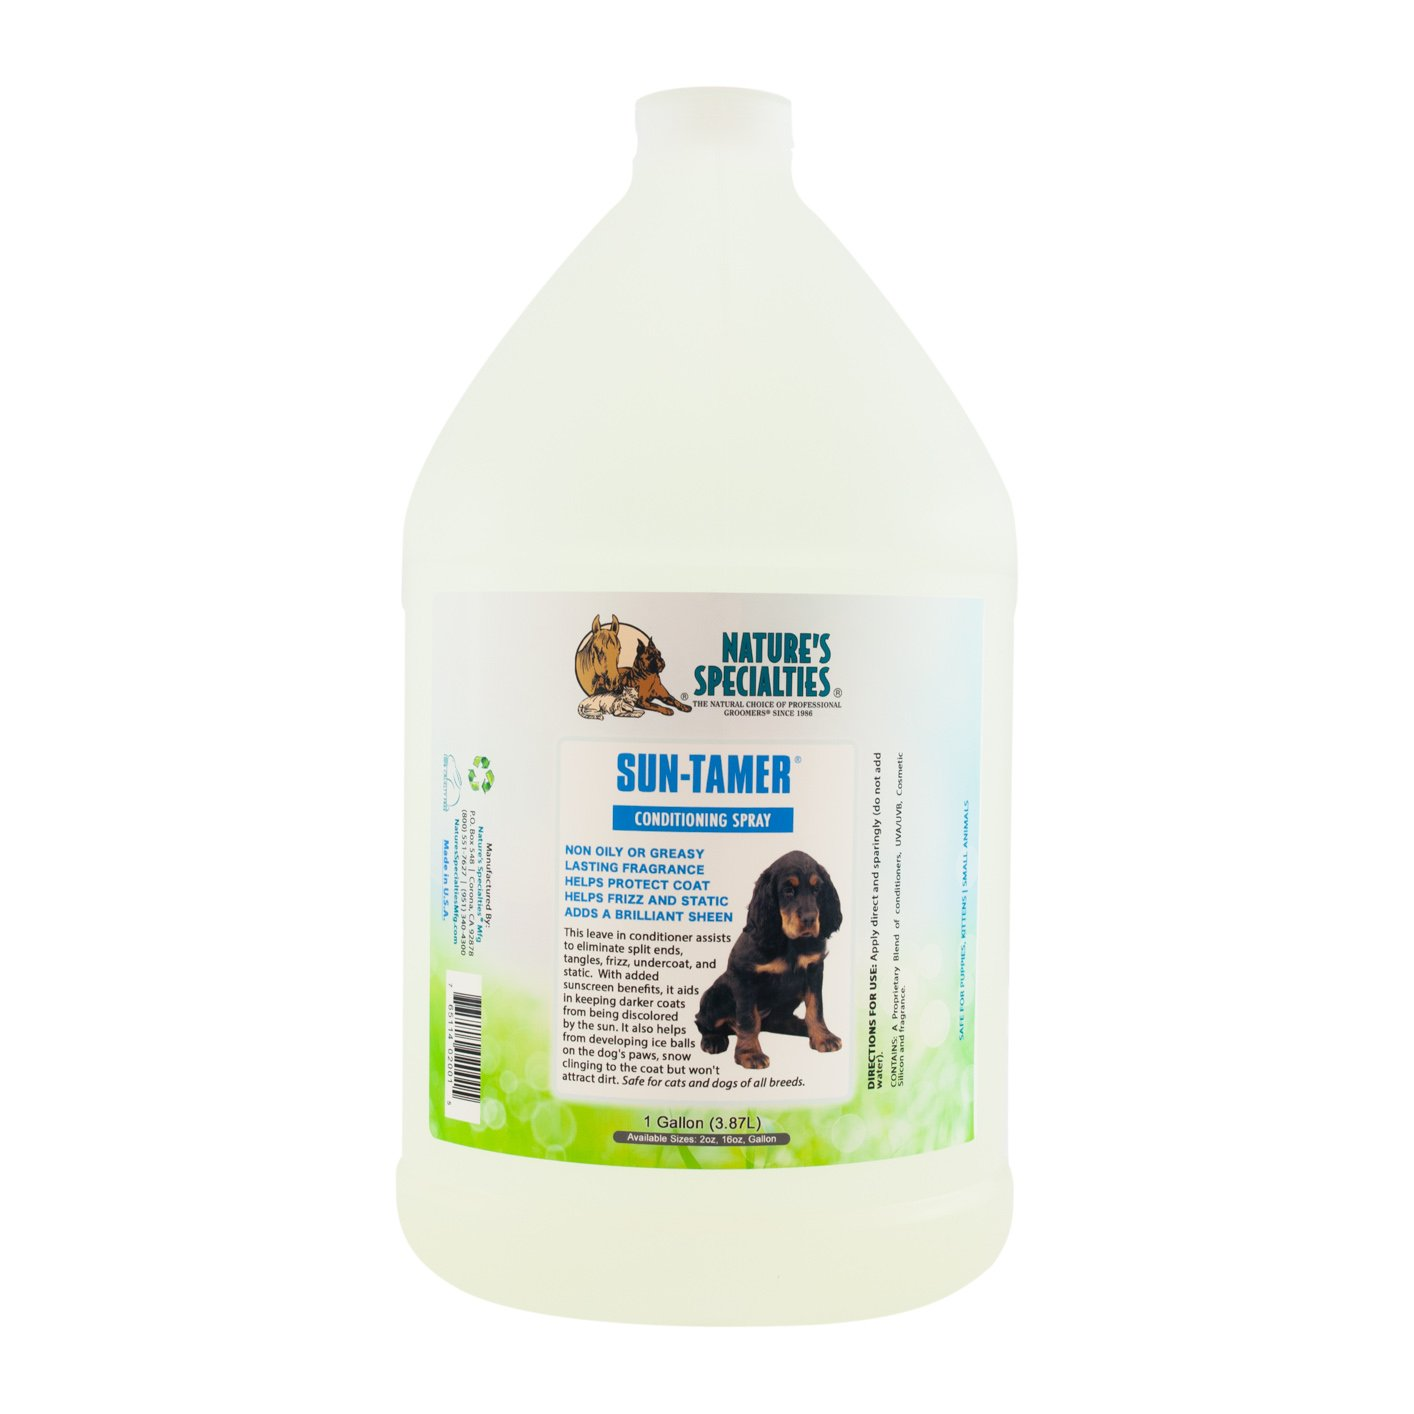 Nature's Specialties Sun Tamer Leave in Pet Conditioner with UVA/UVB by Nature's Specialties Mfg